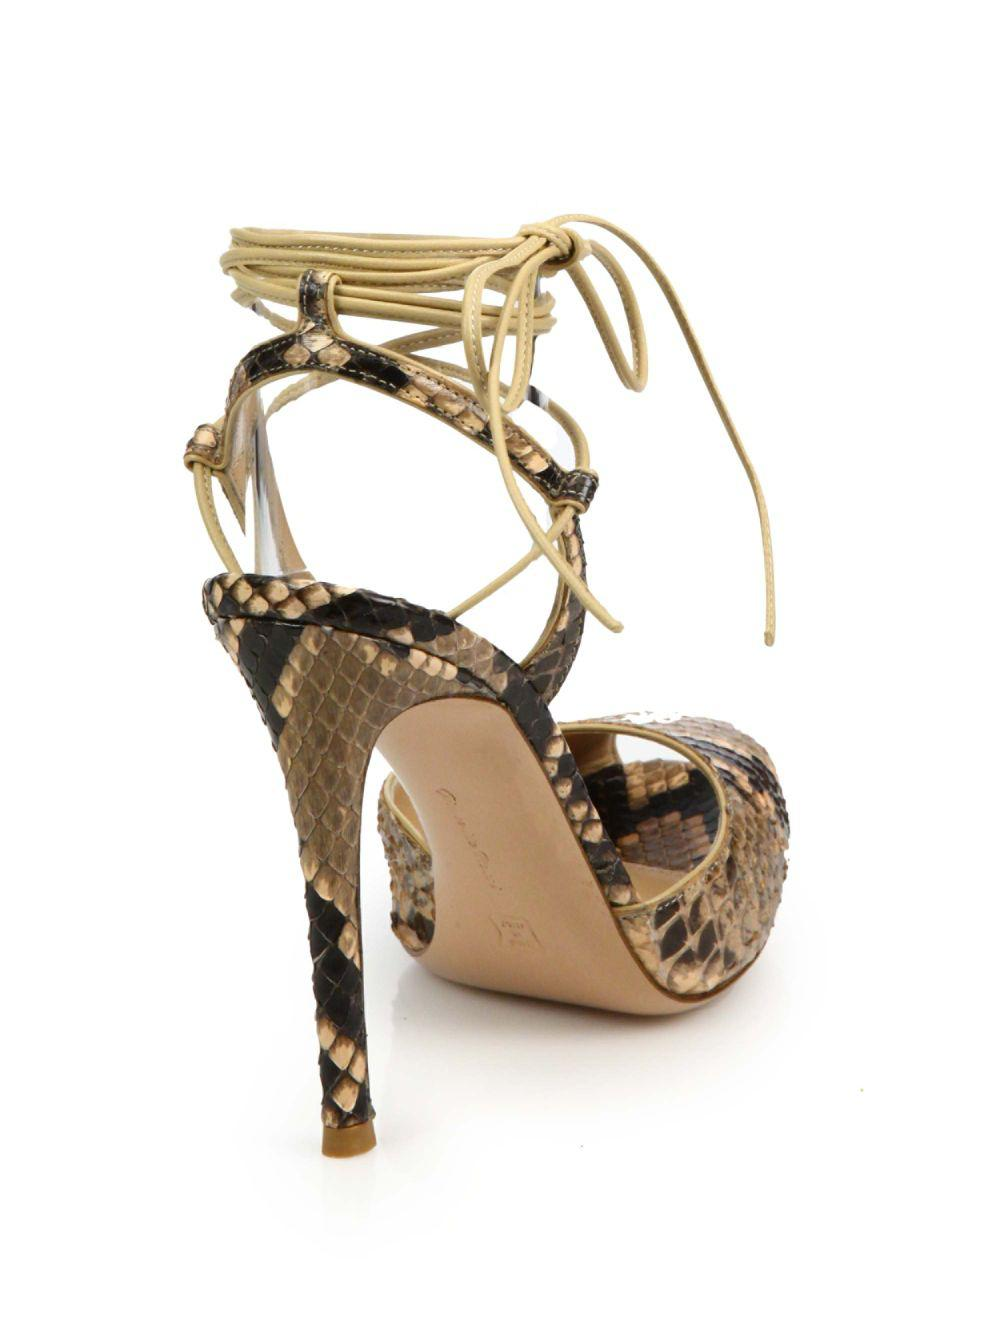 fb479ad422 Gianvito Rossi Python-embossed Leather Peep Toe Ankle-wrap Sandals - Save  23% - Lyst